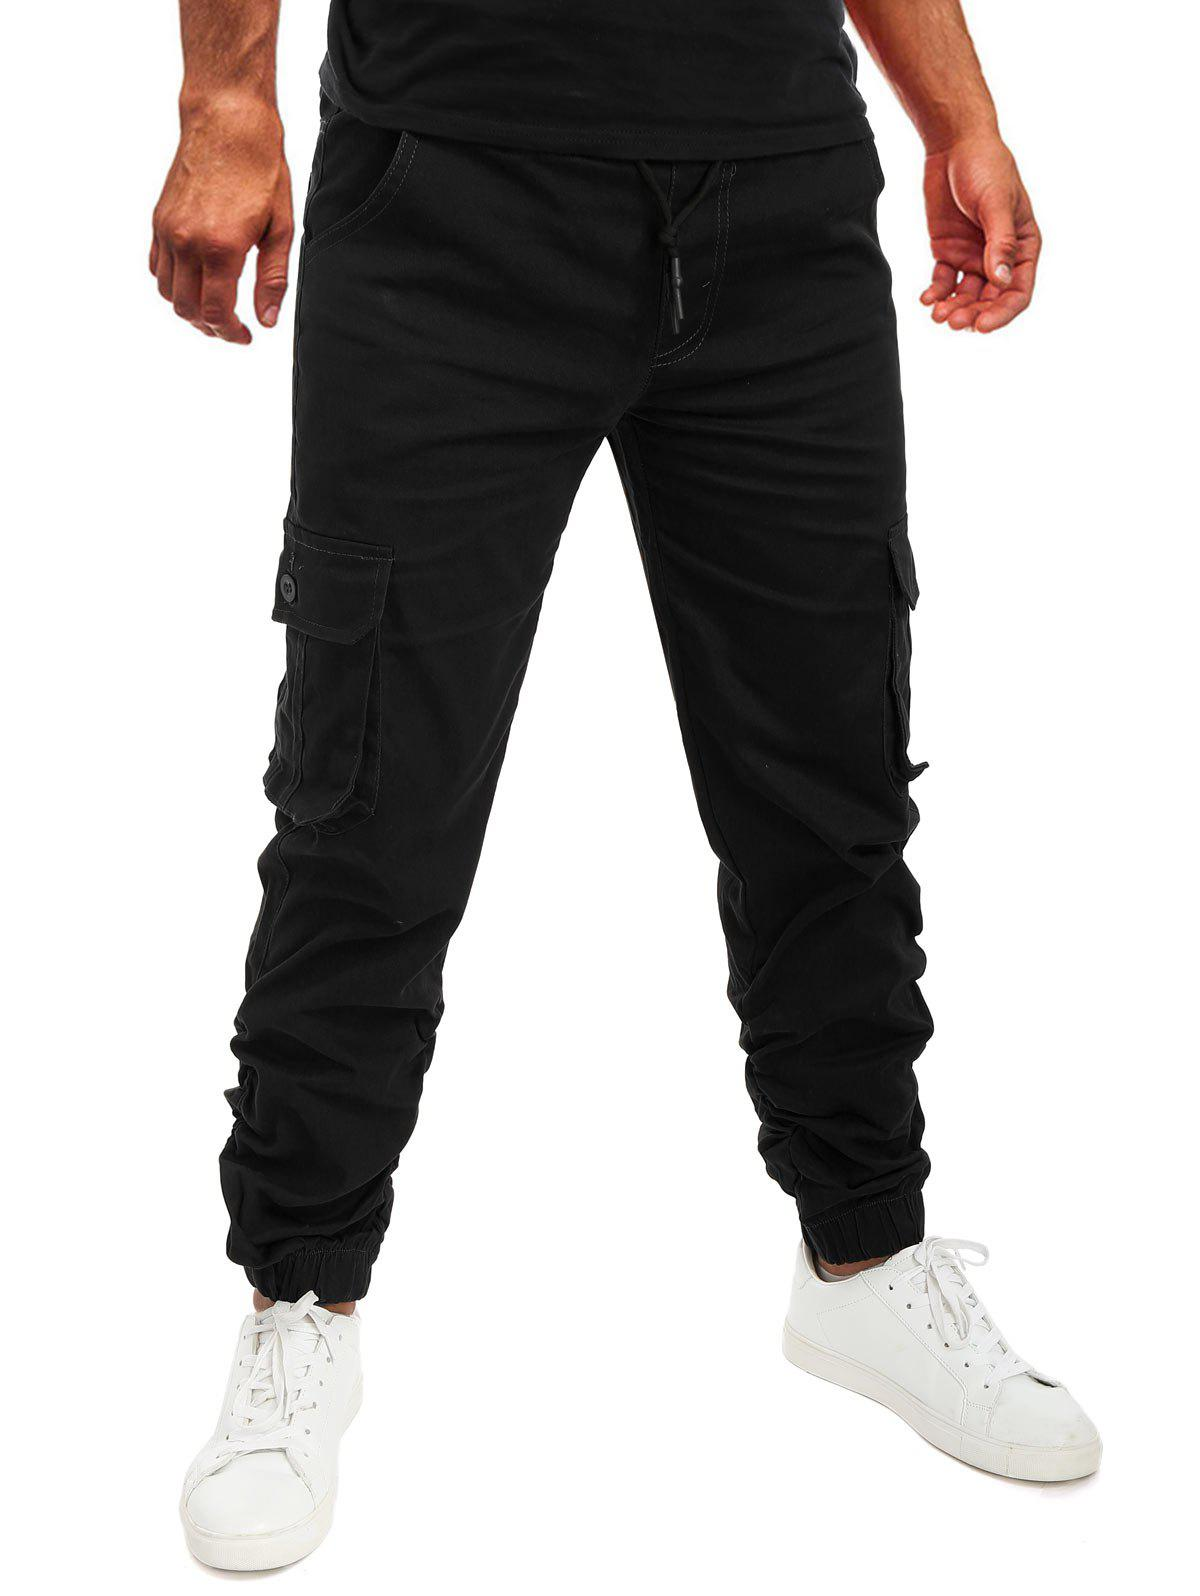 Hot Pocket Drawstring Decoration Jogger Pants